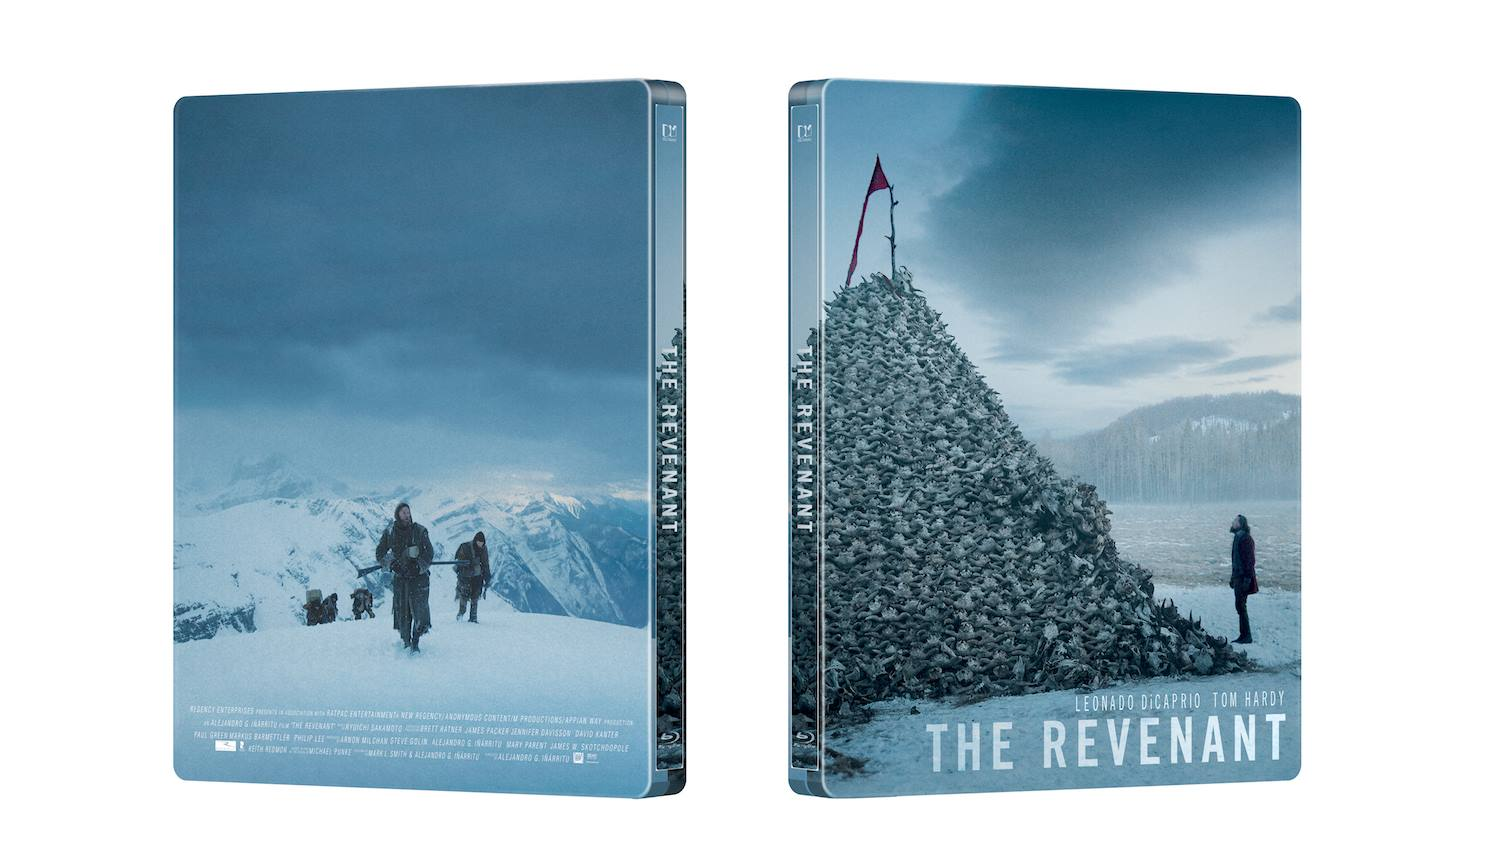 The Revenant steelbook mantalab